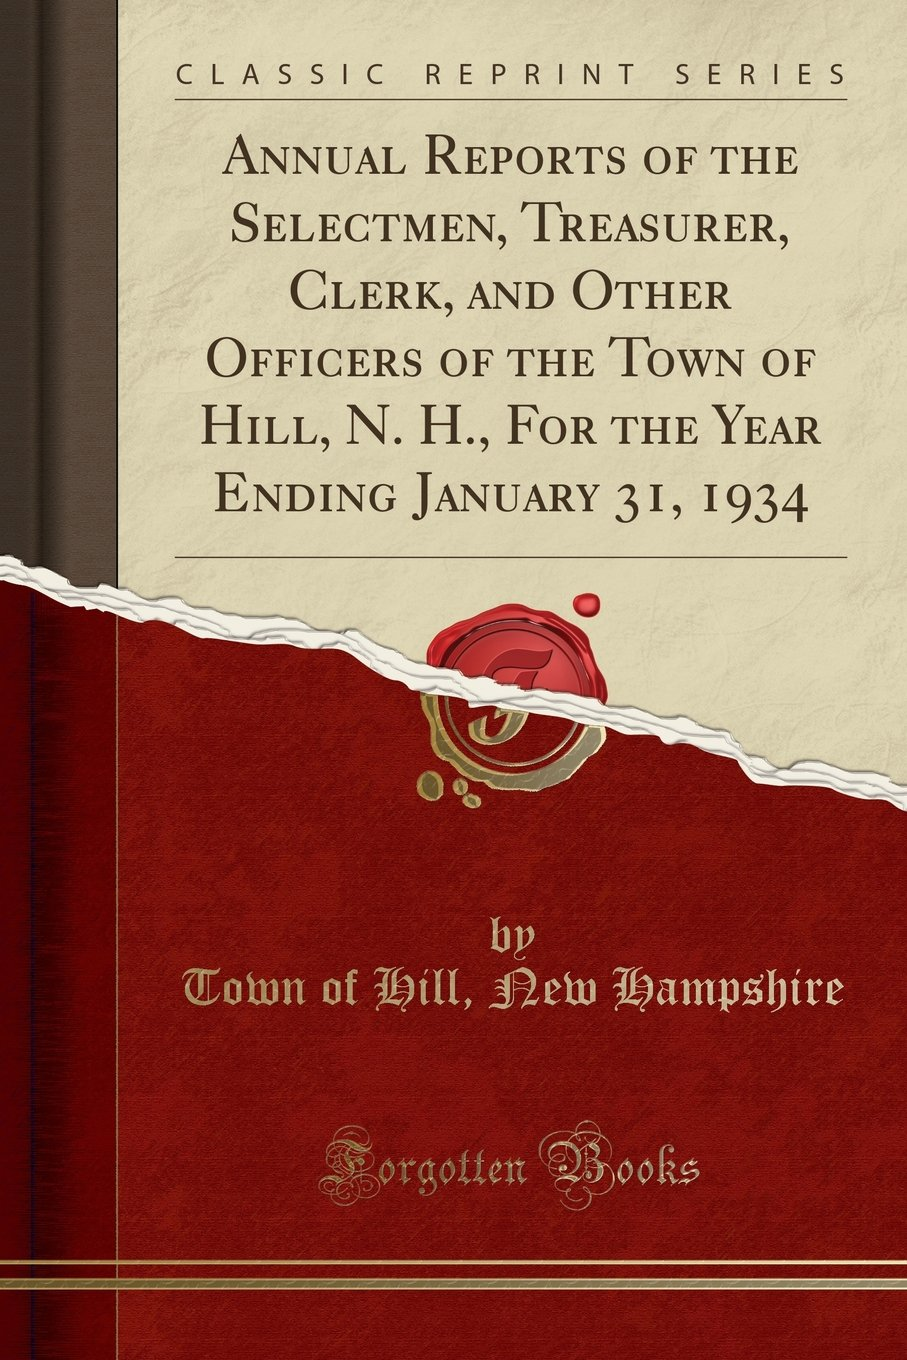 Read Online Annual Reports of the Selectmen, Treasurer, Clerk, and Other Officers of the Town of Hill, N. H., For the Year Ending January 31, 1934 (Classic Reprint) PDF